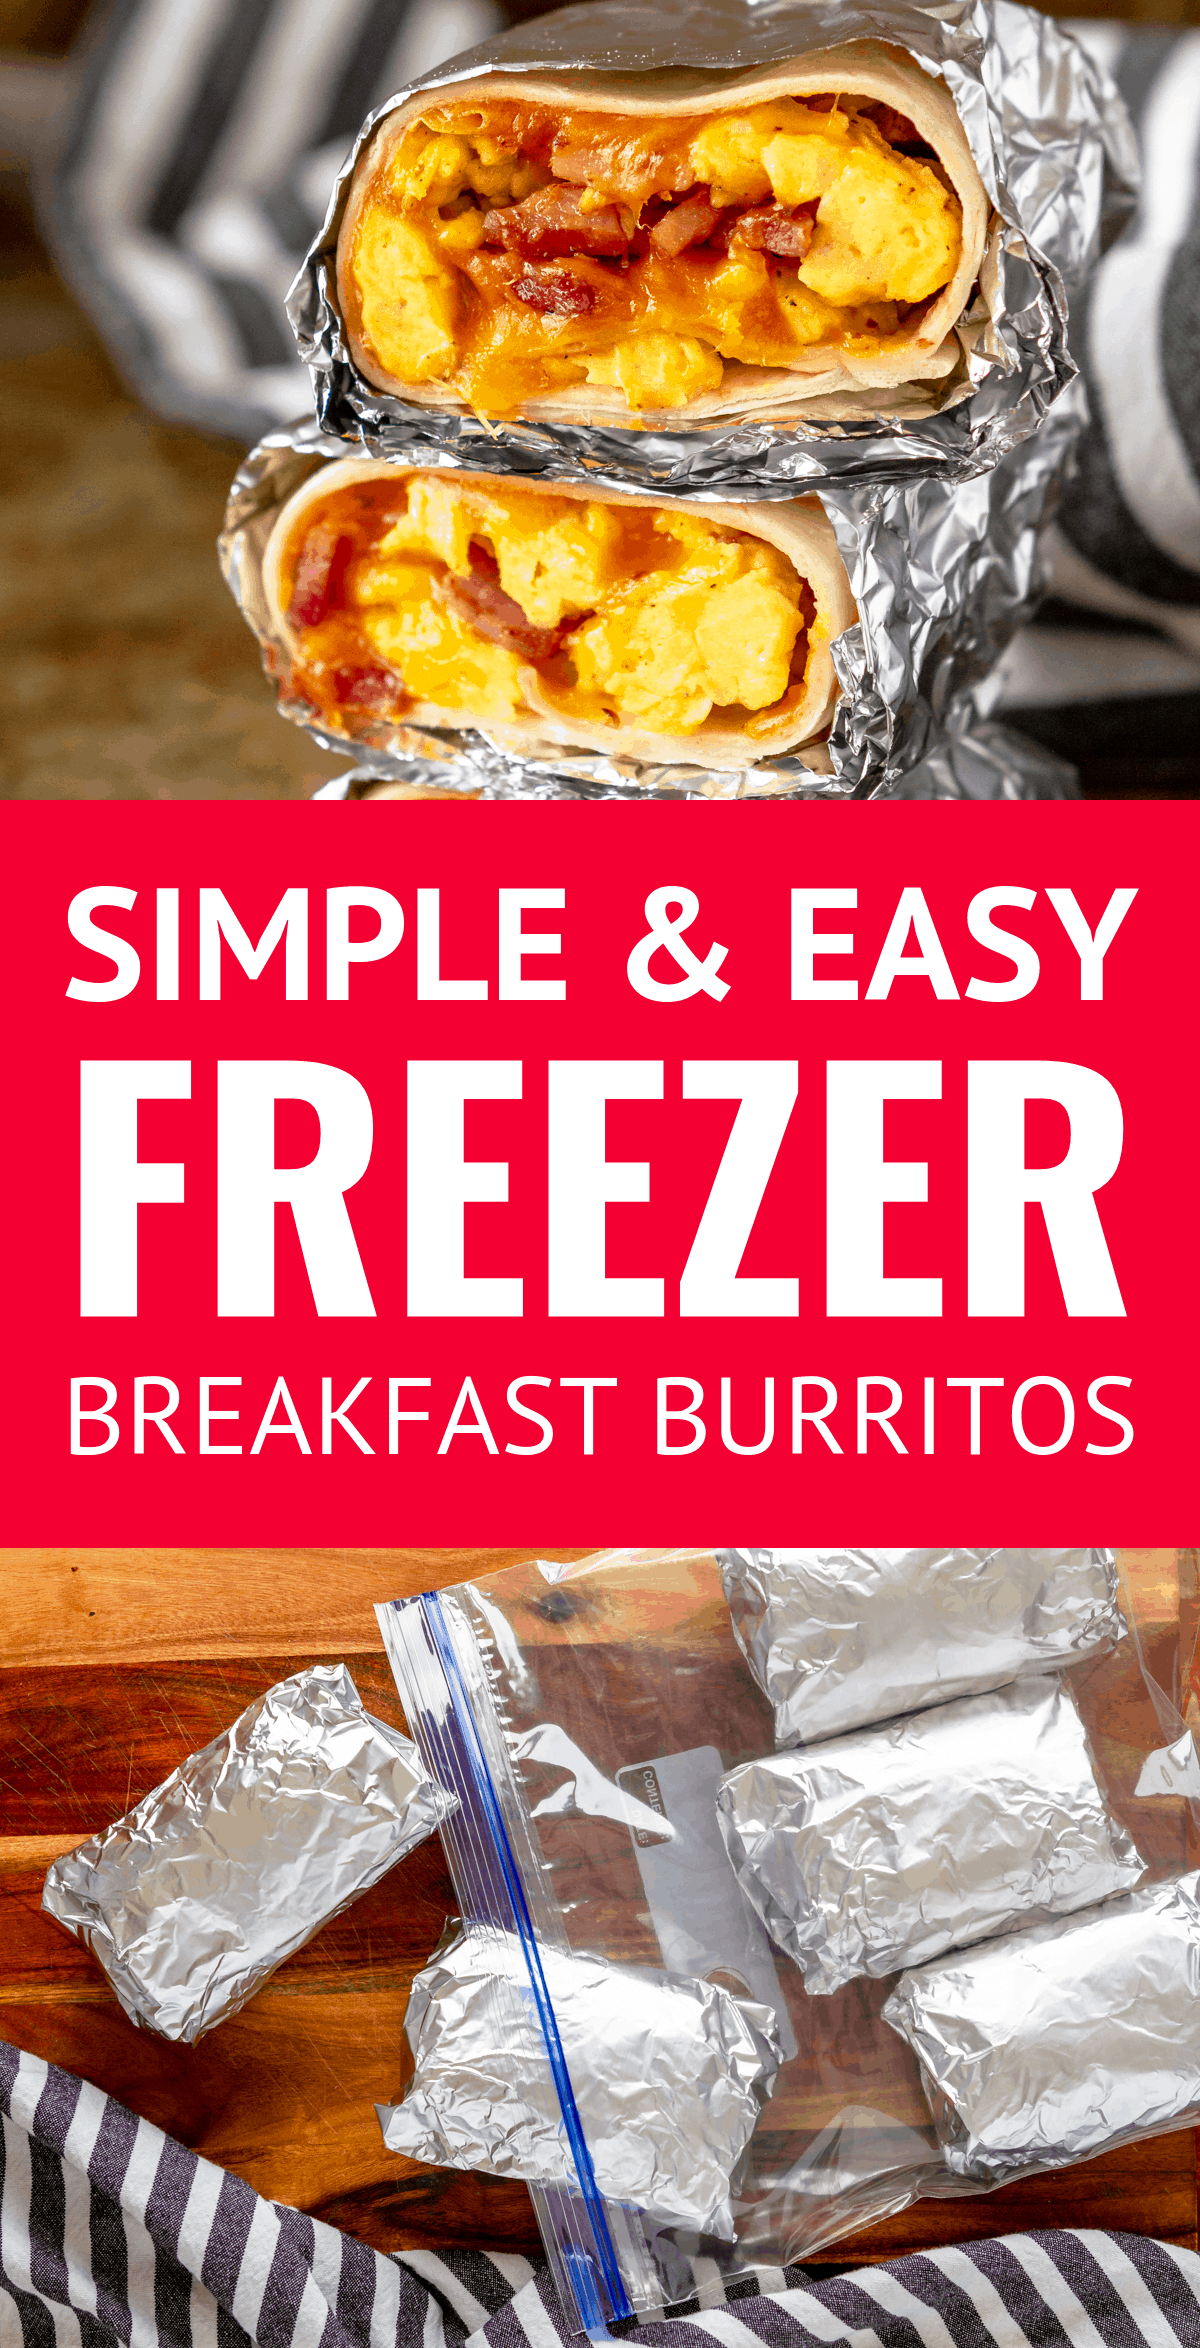 Easy Freezer Breakfast Burritos -- skipping breakfast will be a thing of the past with these simple and easy ham, egg  cheese frozen breakfast burritos. Make ahead breakfast burritos are the perfect way to meal prep breakfasts for the week! | how to make breakfast burritos | easy breakfast burrito recipe | easy breakfast burritos #breakfastburritos #freezerbreakfastburritos #makeaheadbreakfast #mealprep #breakfastrecipes #makeahead #makeaheadmeals #freezermeals #freezerfriendly #freezercooking